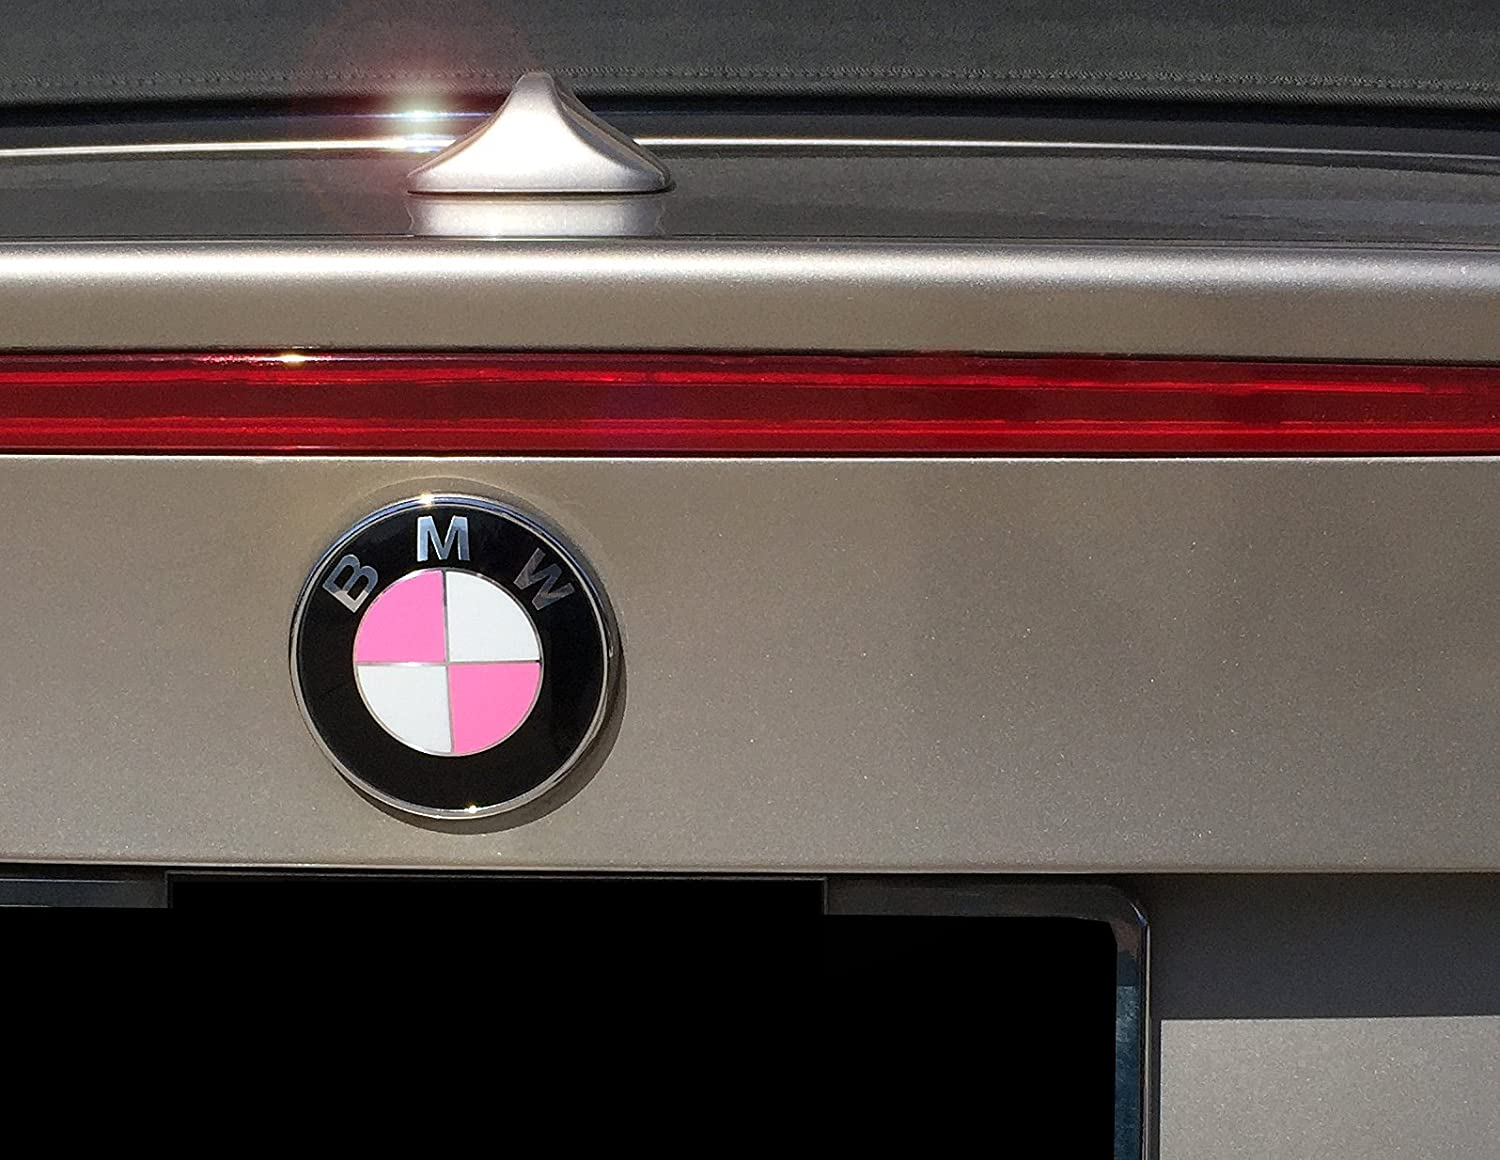 by Air Advance Breast Cancer Awareness fits BMW Fits Almost All BMWs Gloss Pink Vinyl Emblem Covers and Ribbon Decals